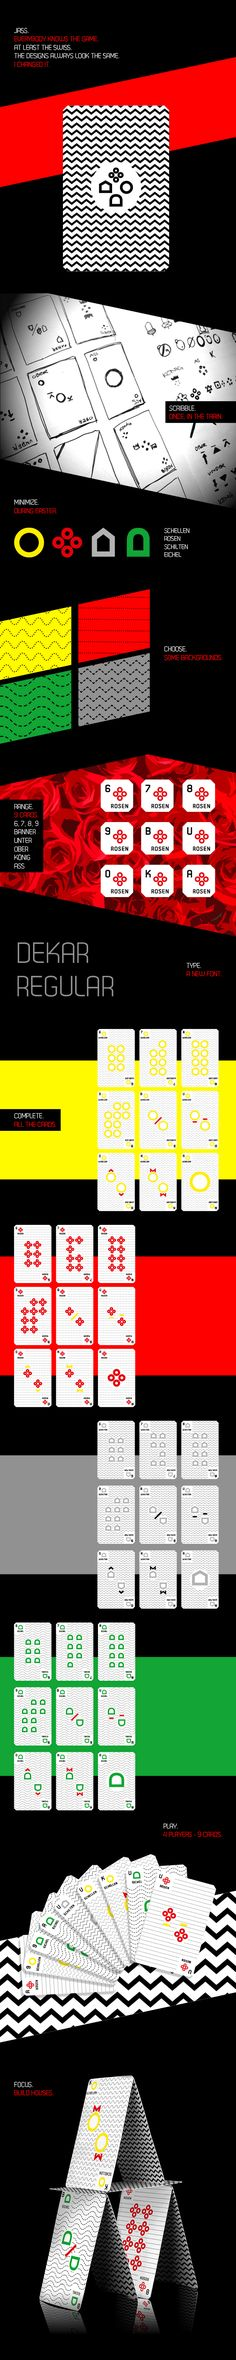 The train is a creative place. Once, inspired by passengers who spoke about playing cards. «Jassen» an old Swiss card game - make it in a new look. Thanks passengers, for the inspiration!